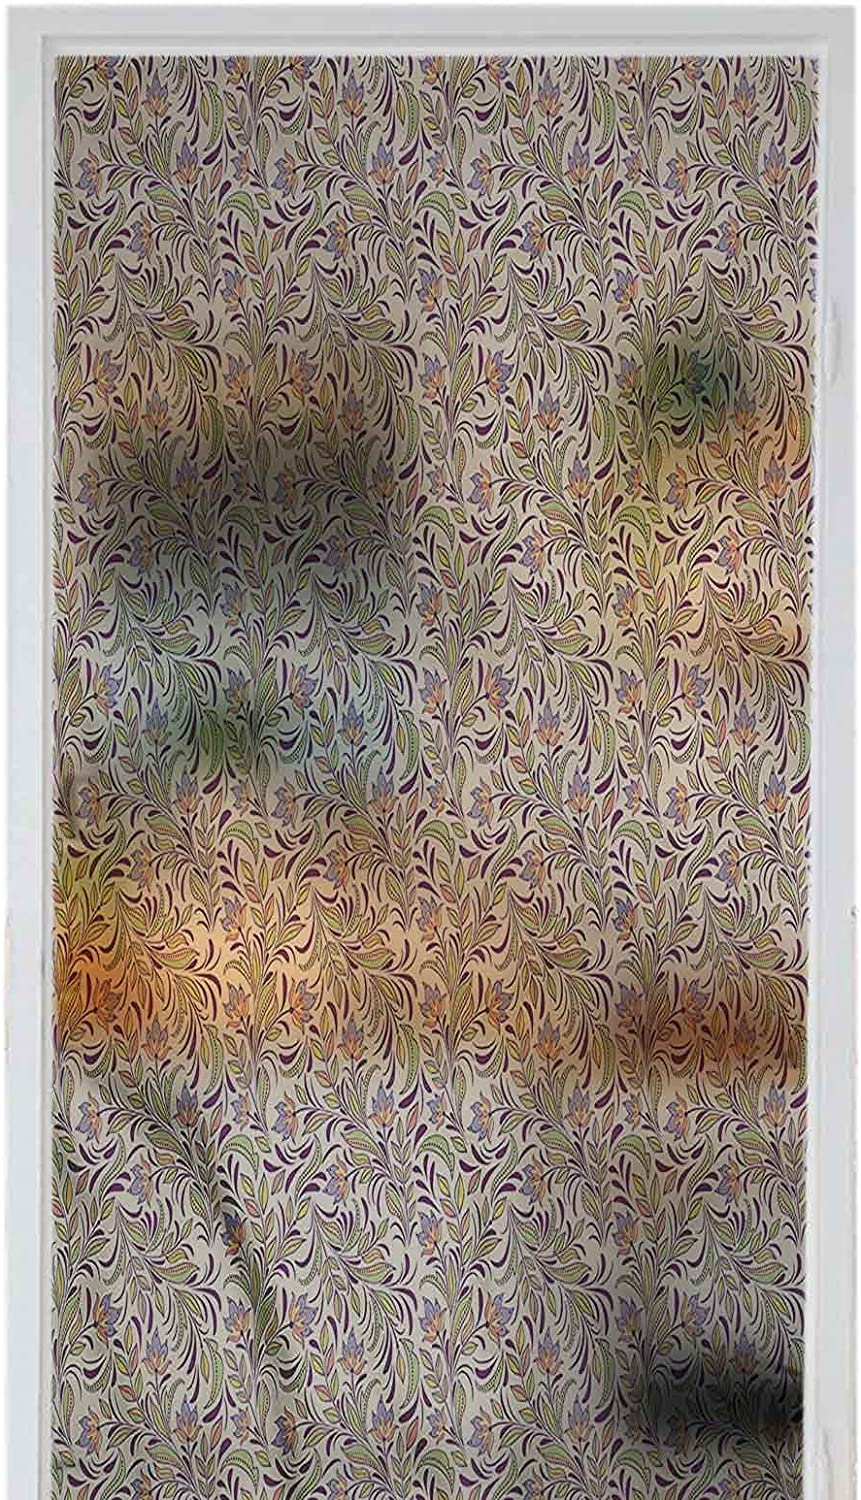 Detroit Mall Homesonne Window Self-Adhesive Film Stained Abs Decoration Glass Product